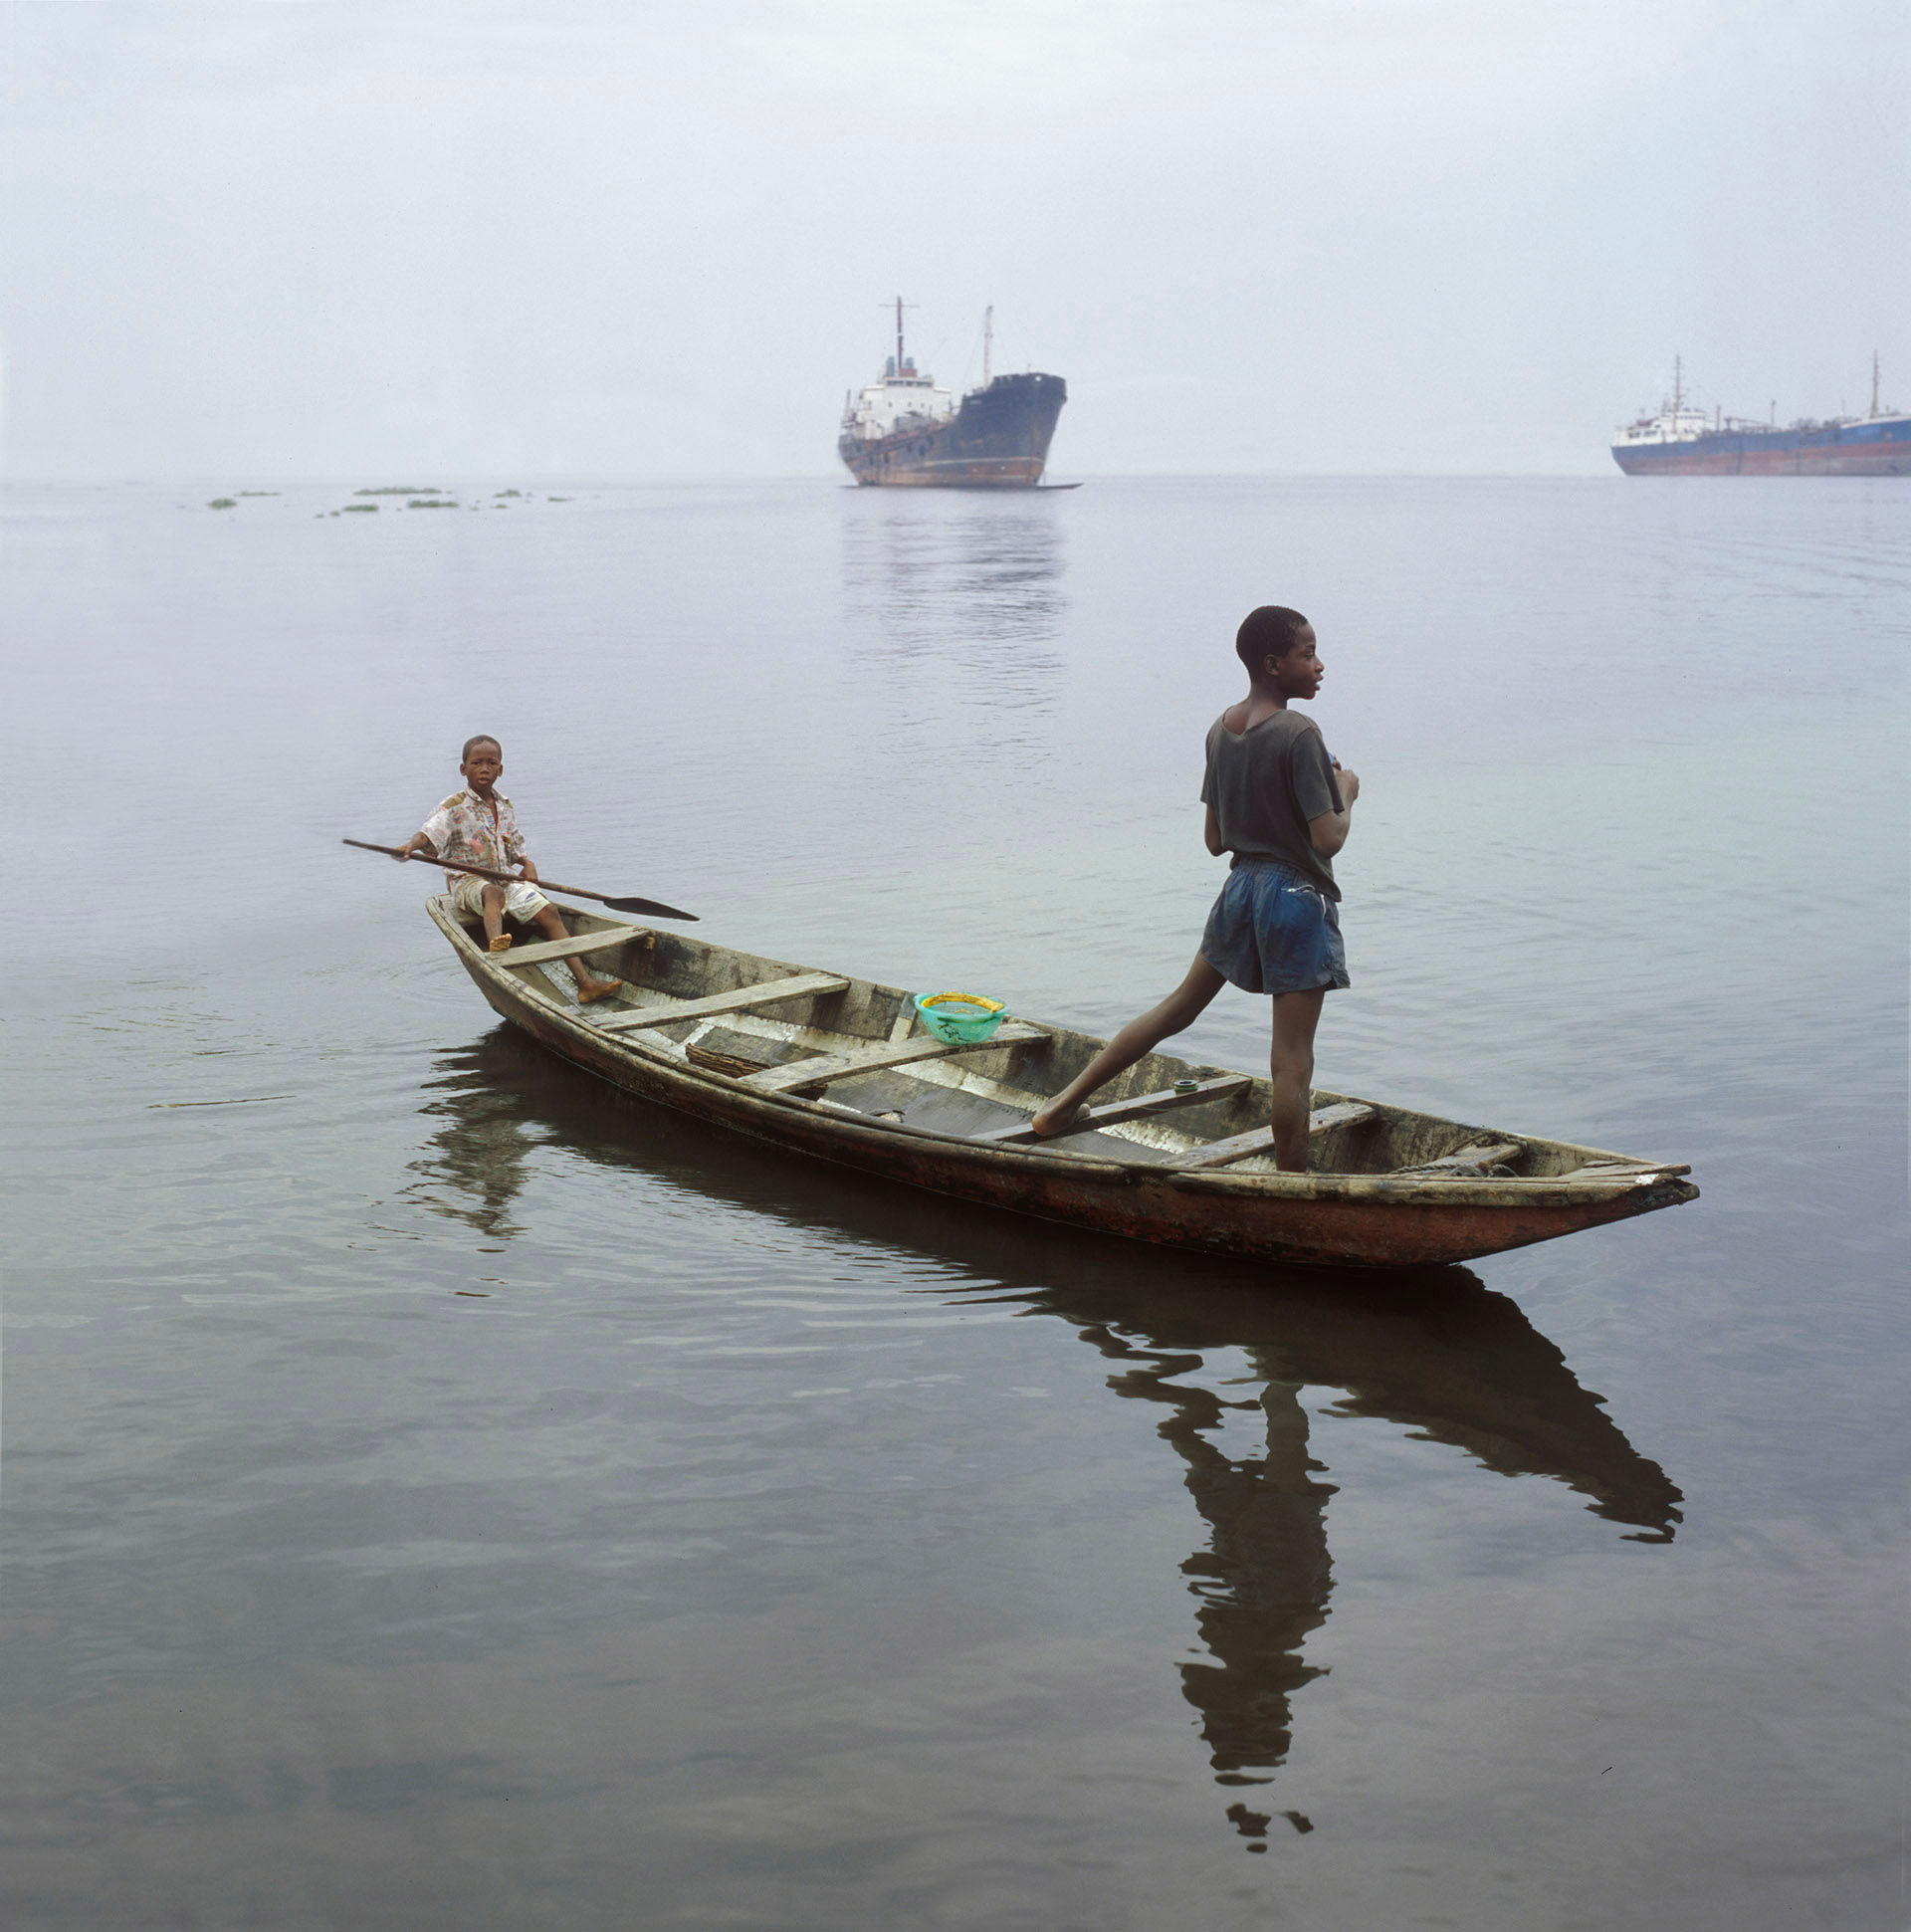 Boys in Pirogue, Lagos